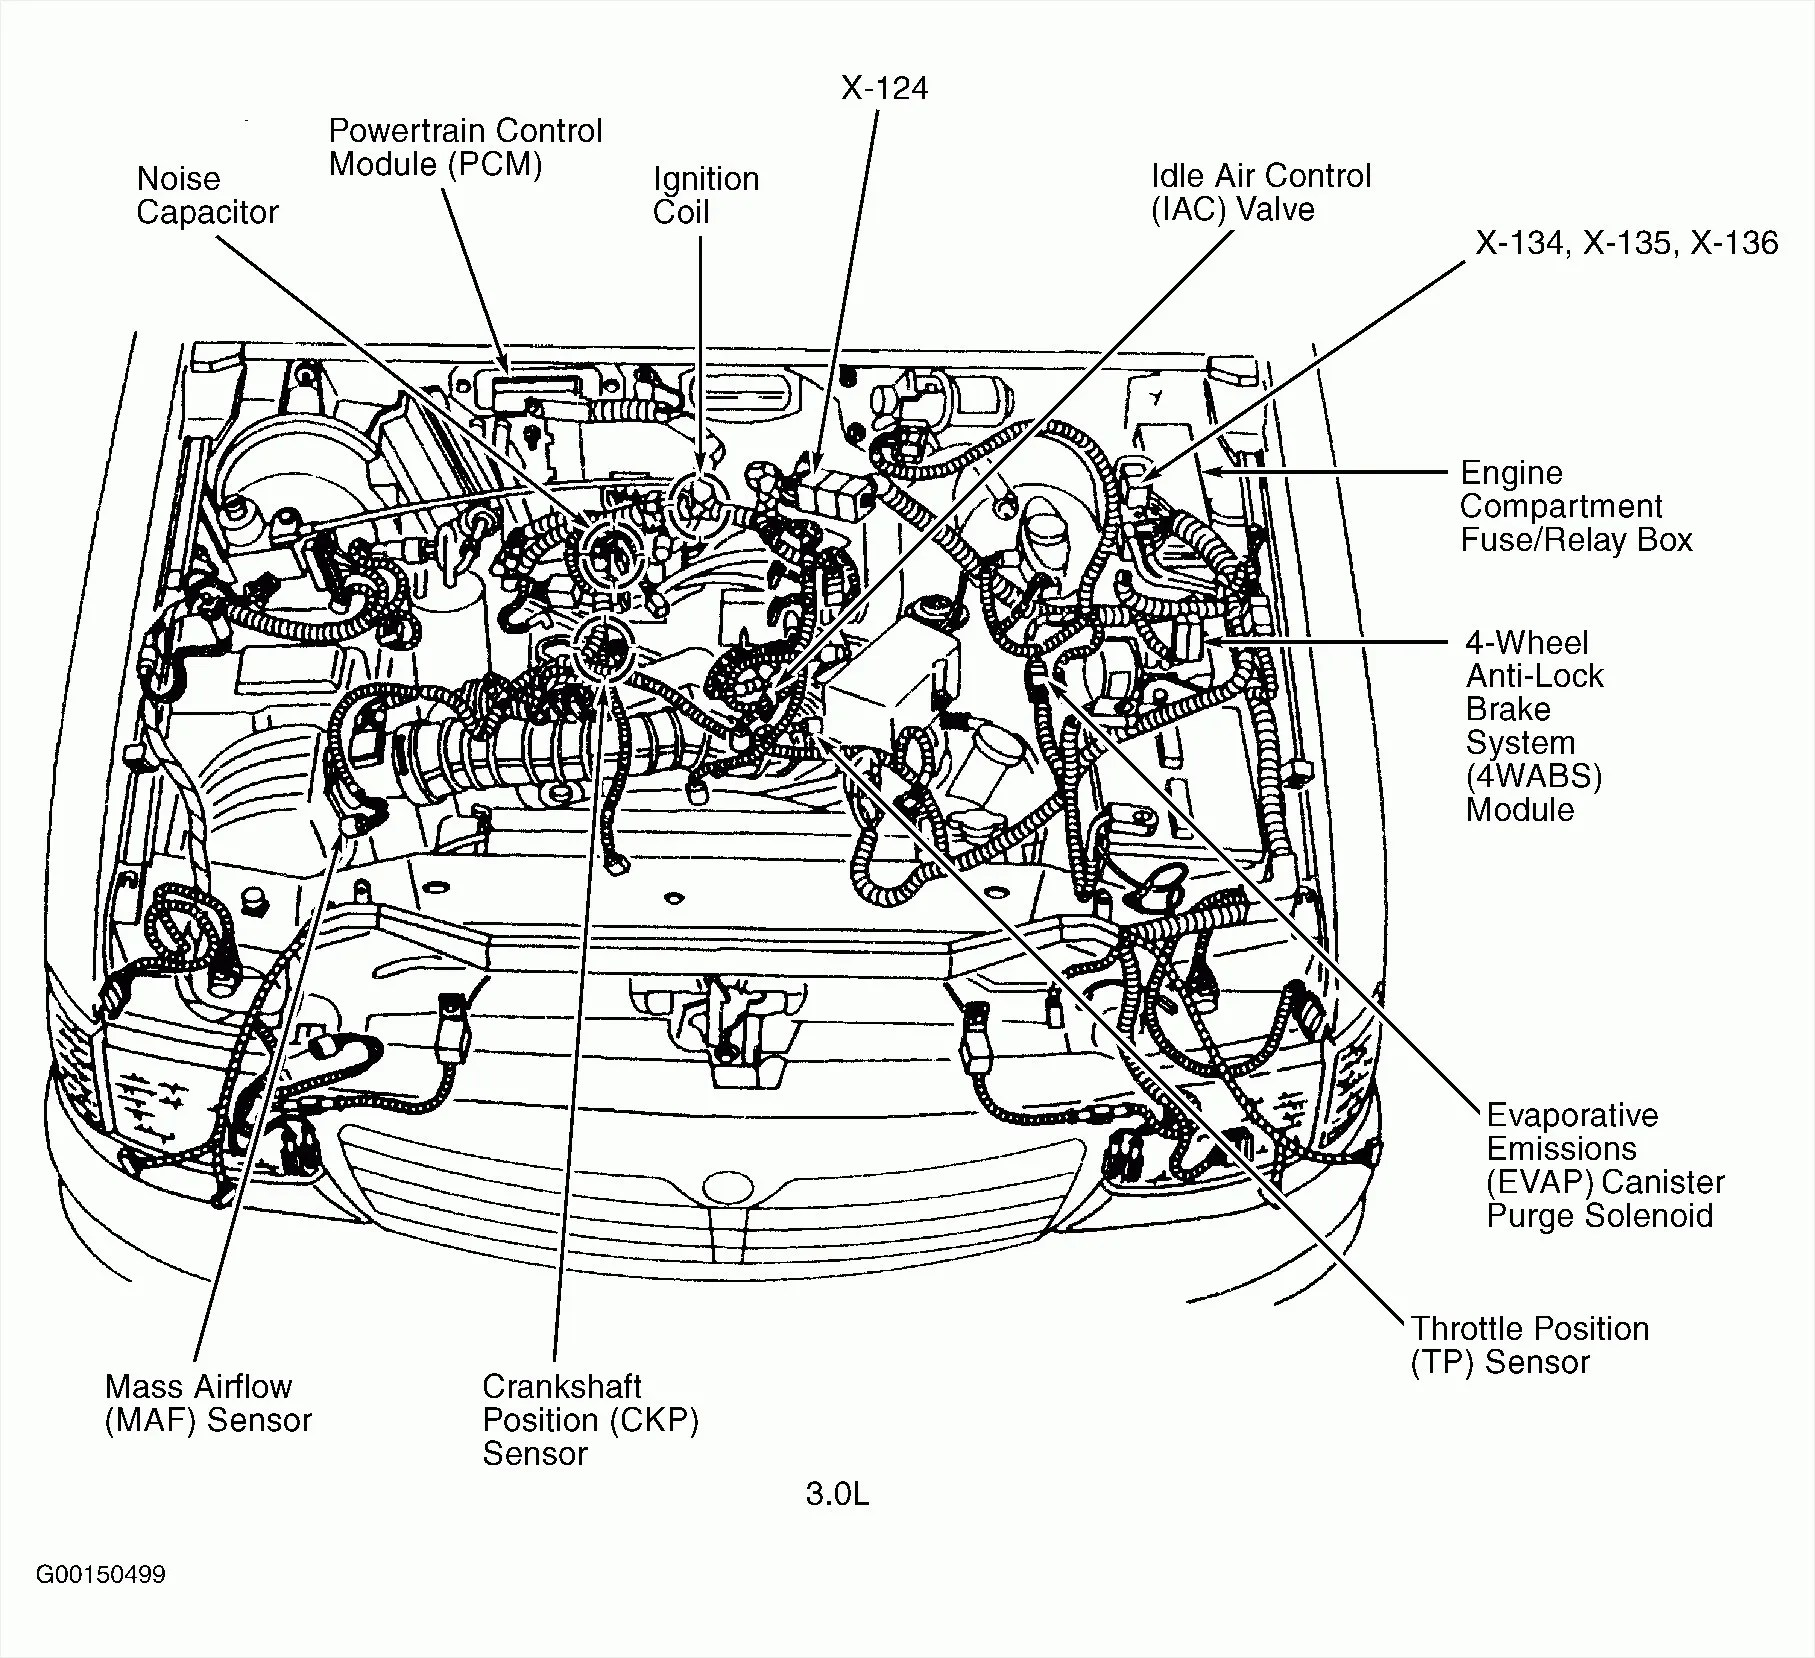 hight resolution of 2008 mazda 6 engine diagram wiring diagram used 2008 mazda 6 engine diagram